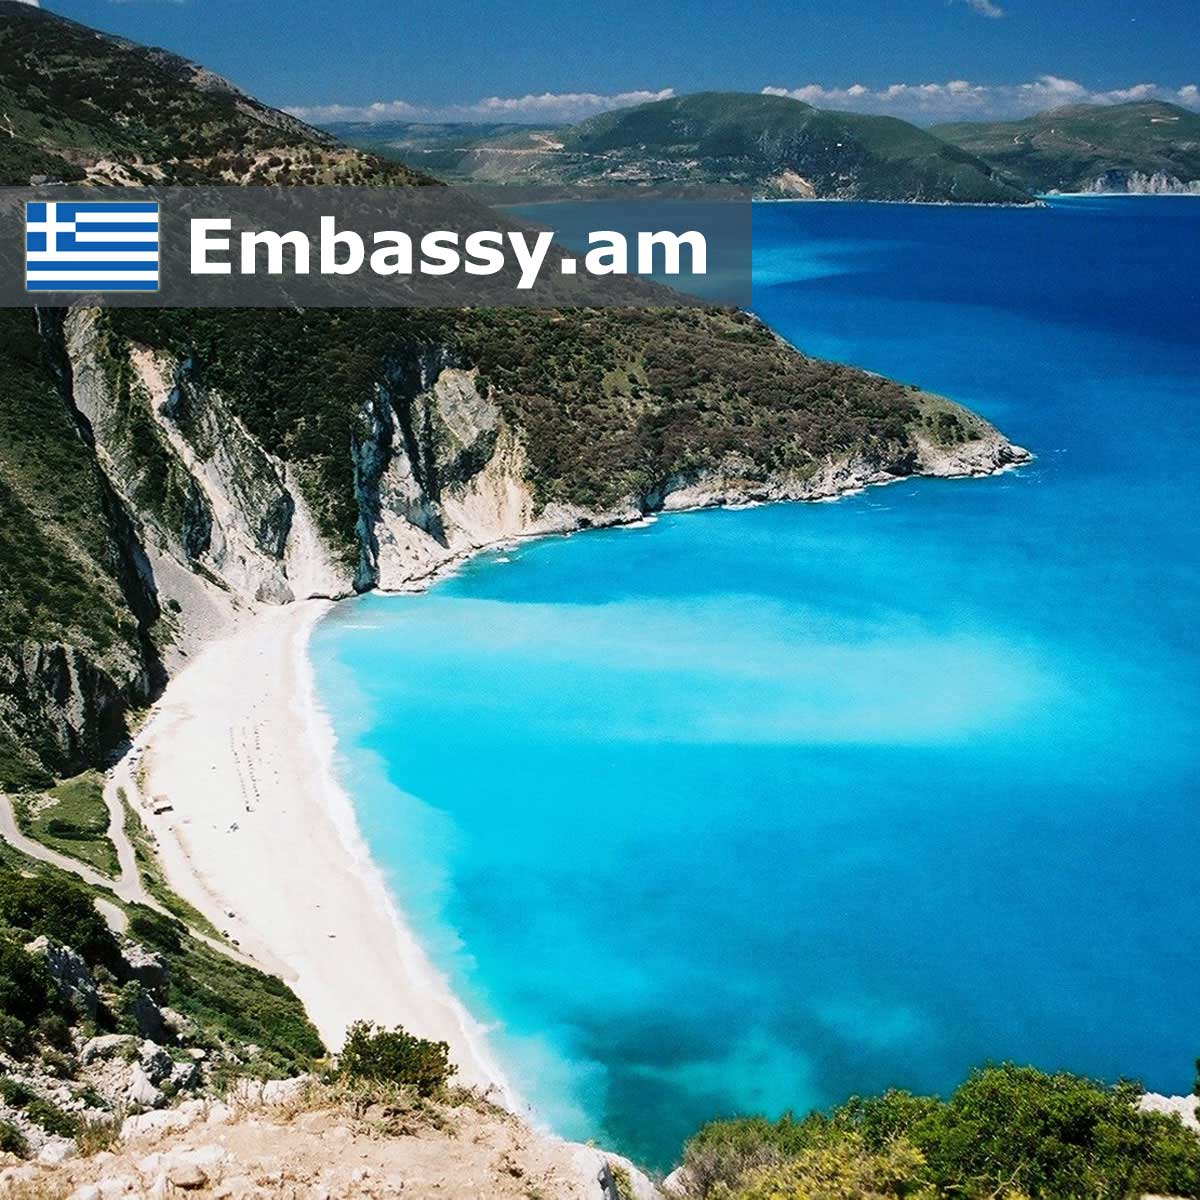 Kefalonia- Hotels in Greece - Embassy.am